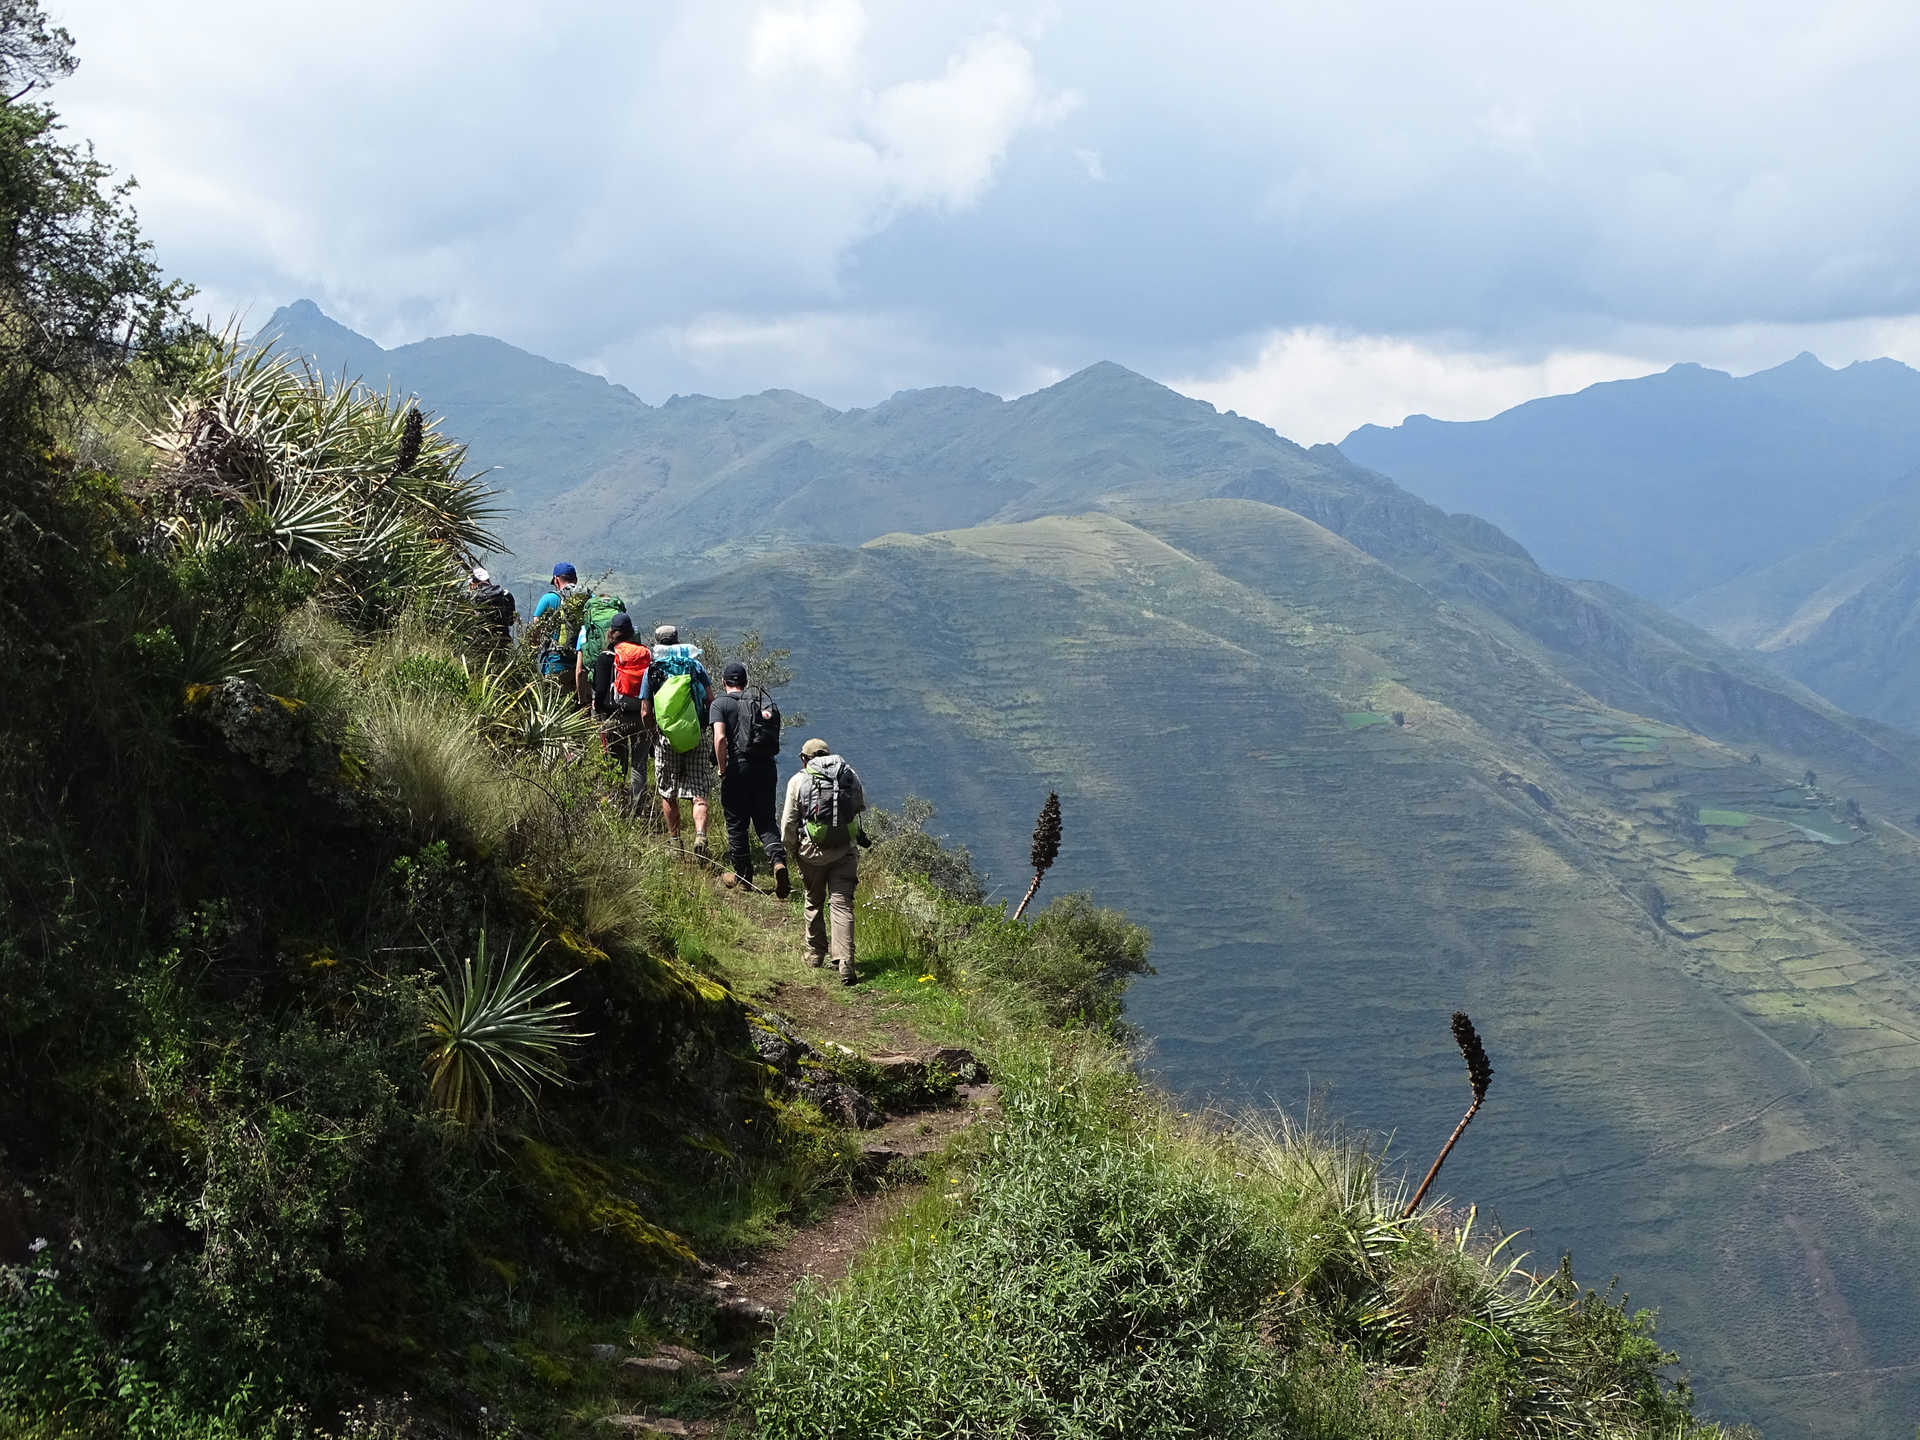 Group of hikers during the Inca Trail